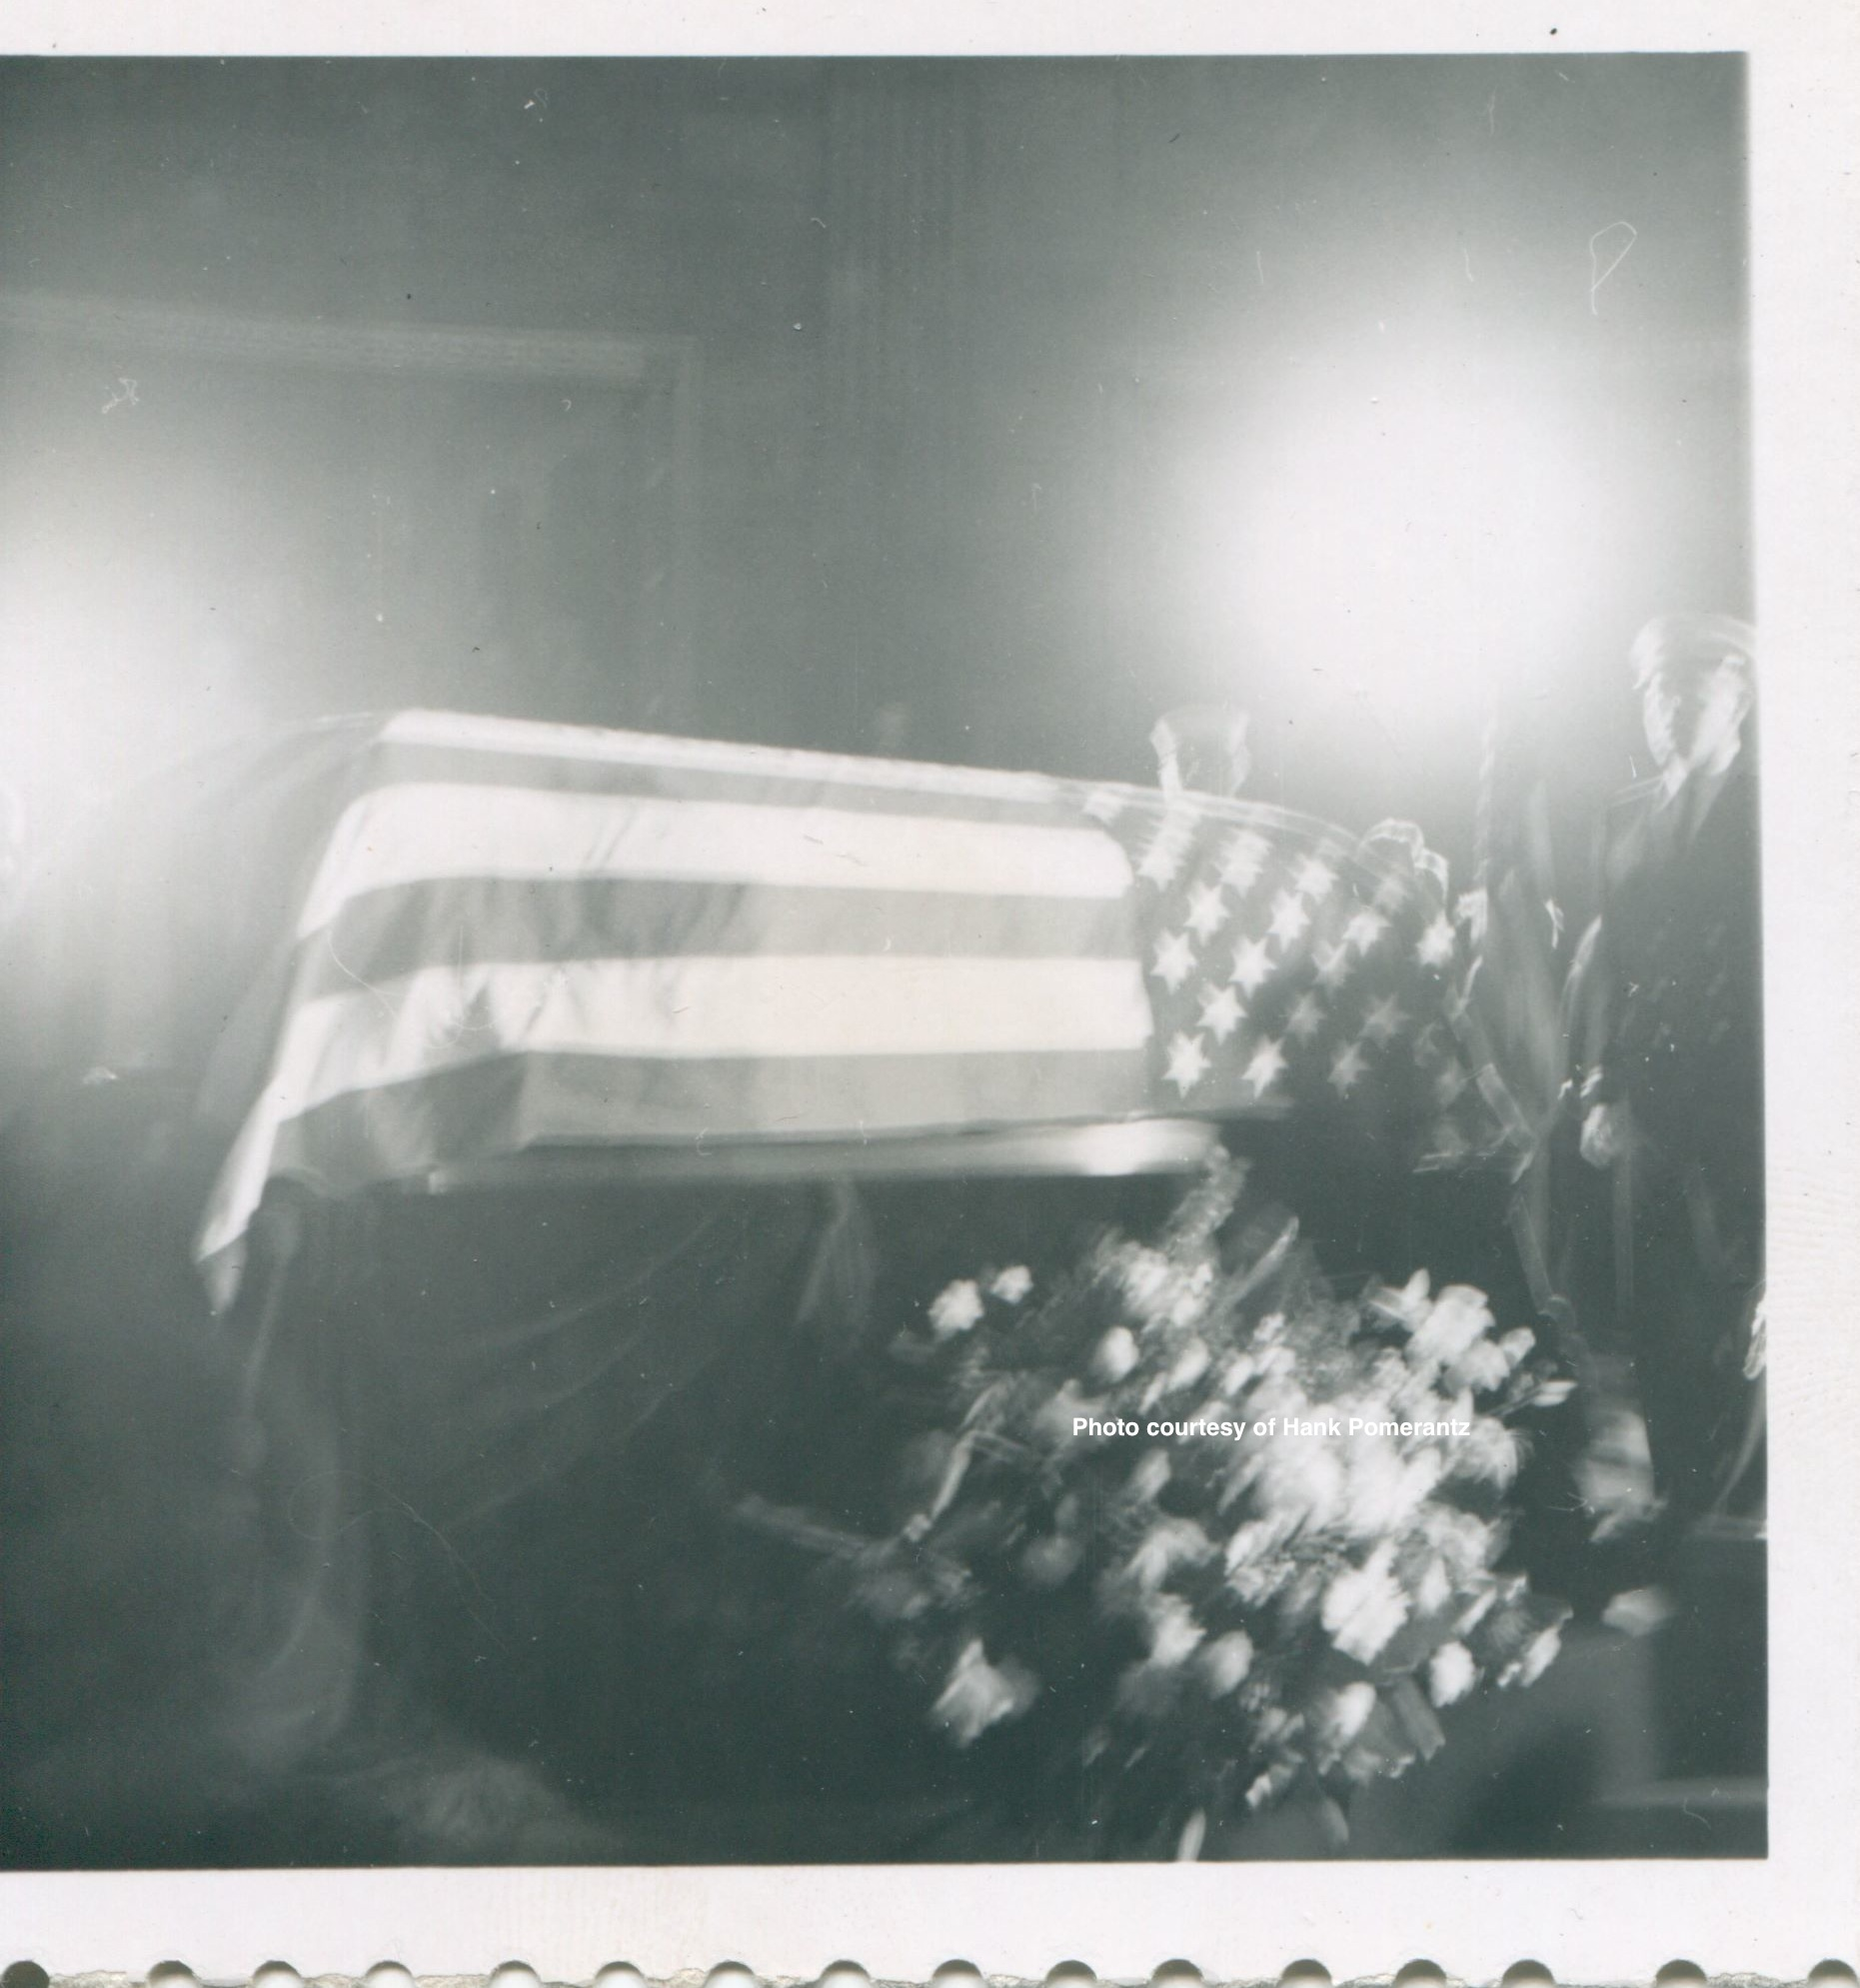 President John F. Kennedy's  casket in the Rotunda. Photo by and courtesy of Hank Pomerantz.